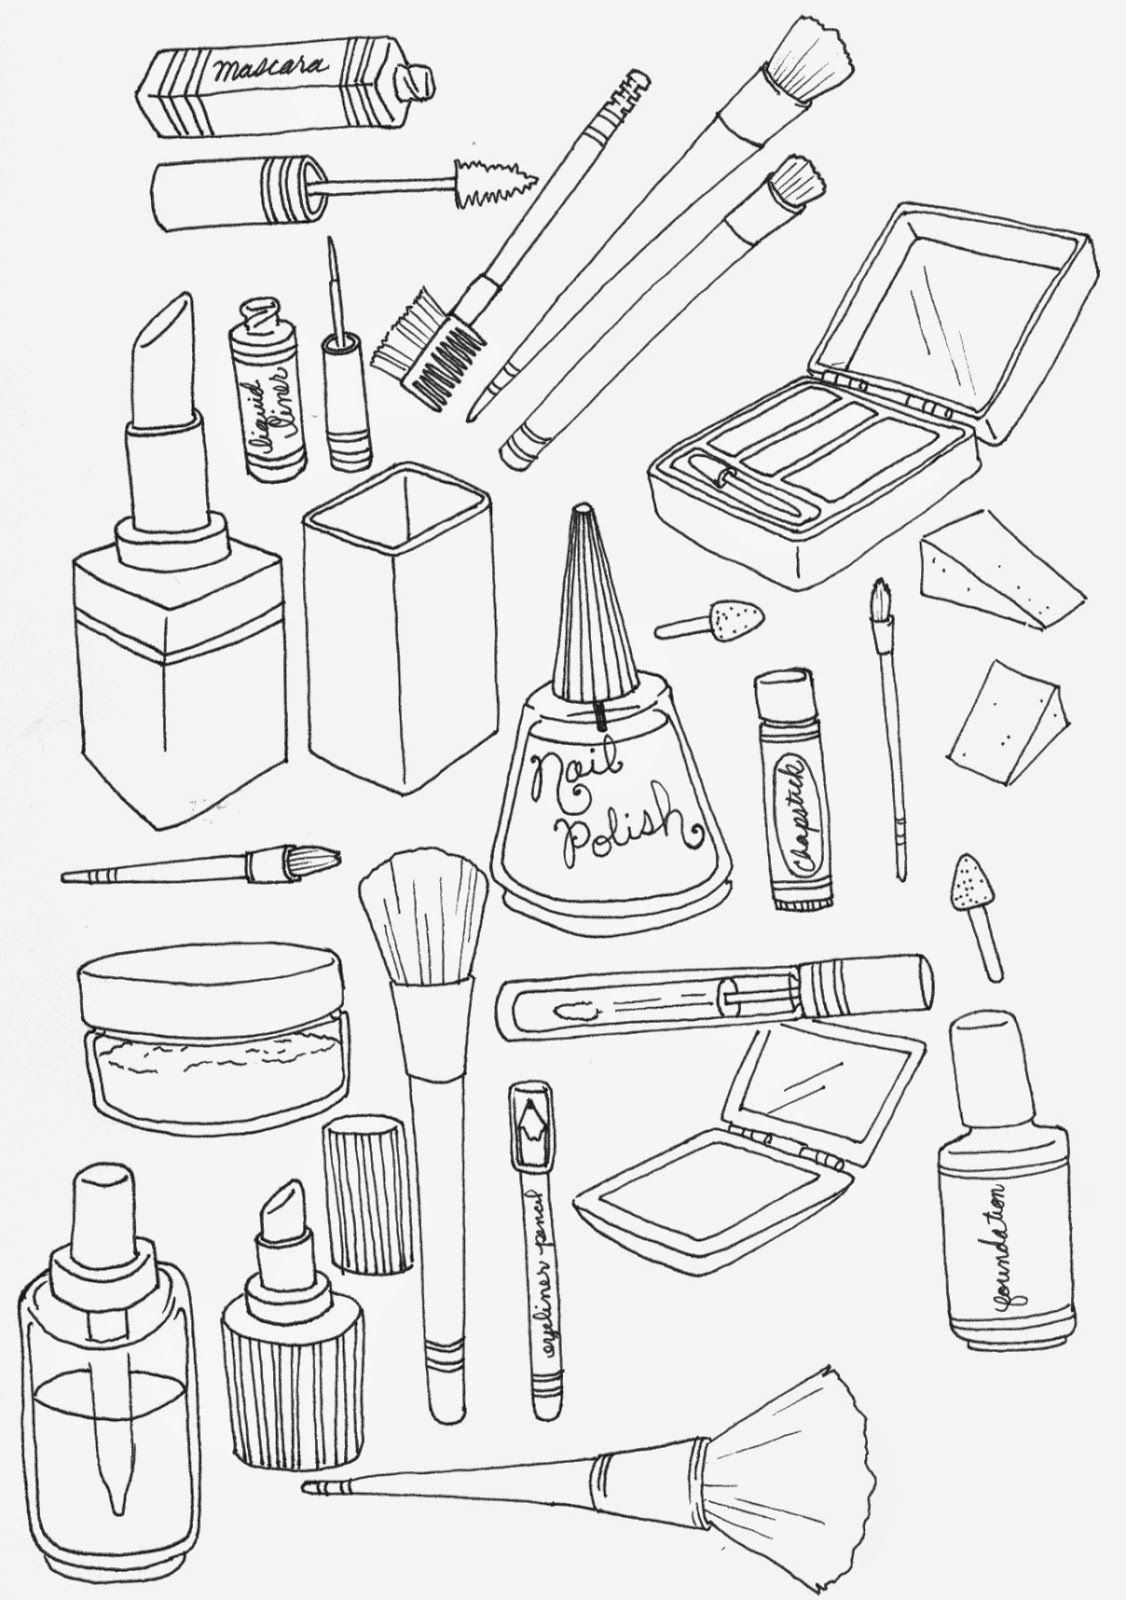 Print Free Technical Drawing Book Pdf Awesome Makeup Coloring Pages To And Print For Free In 2020 Coloring Books Coloring Pages Coloring Book Album